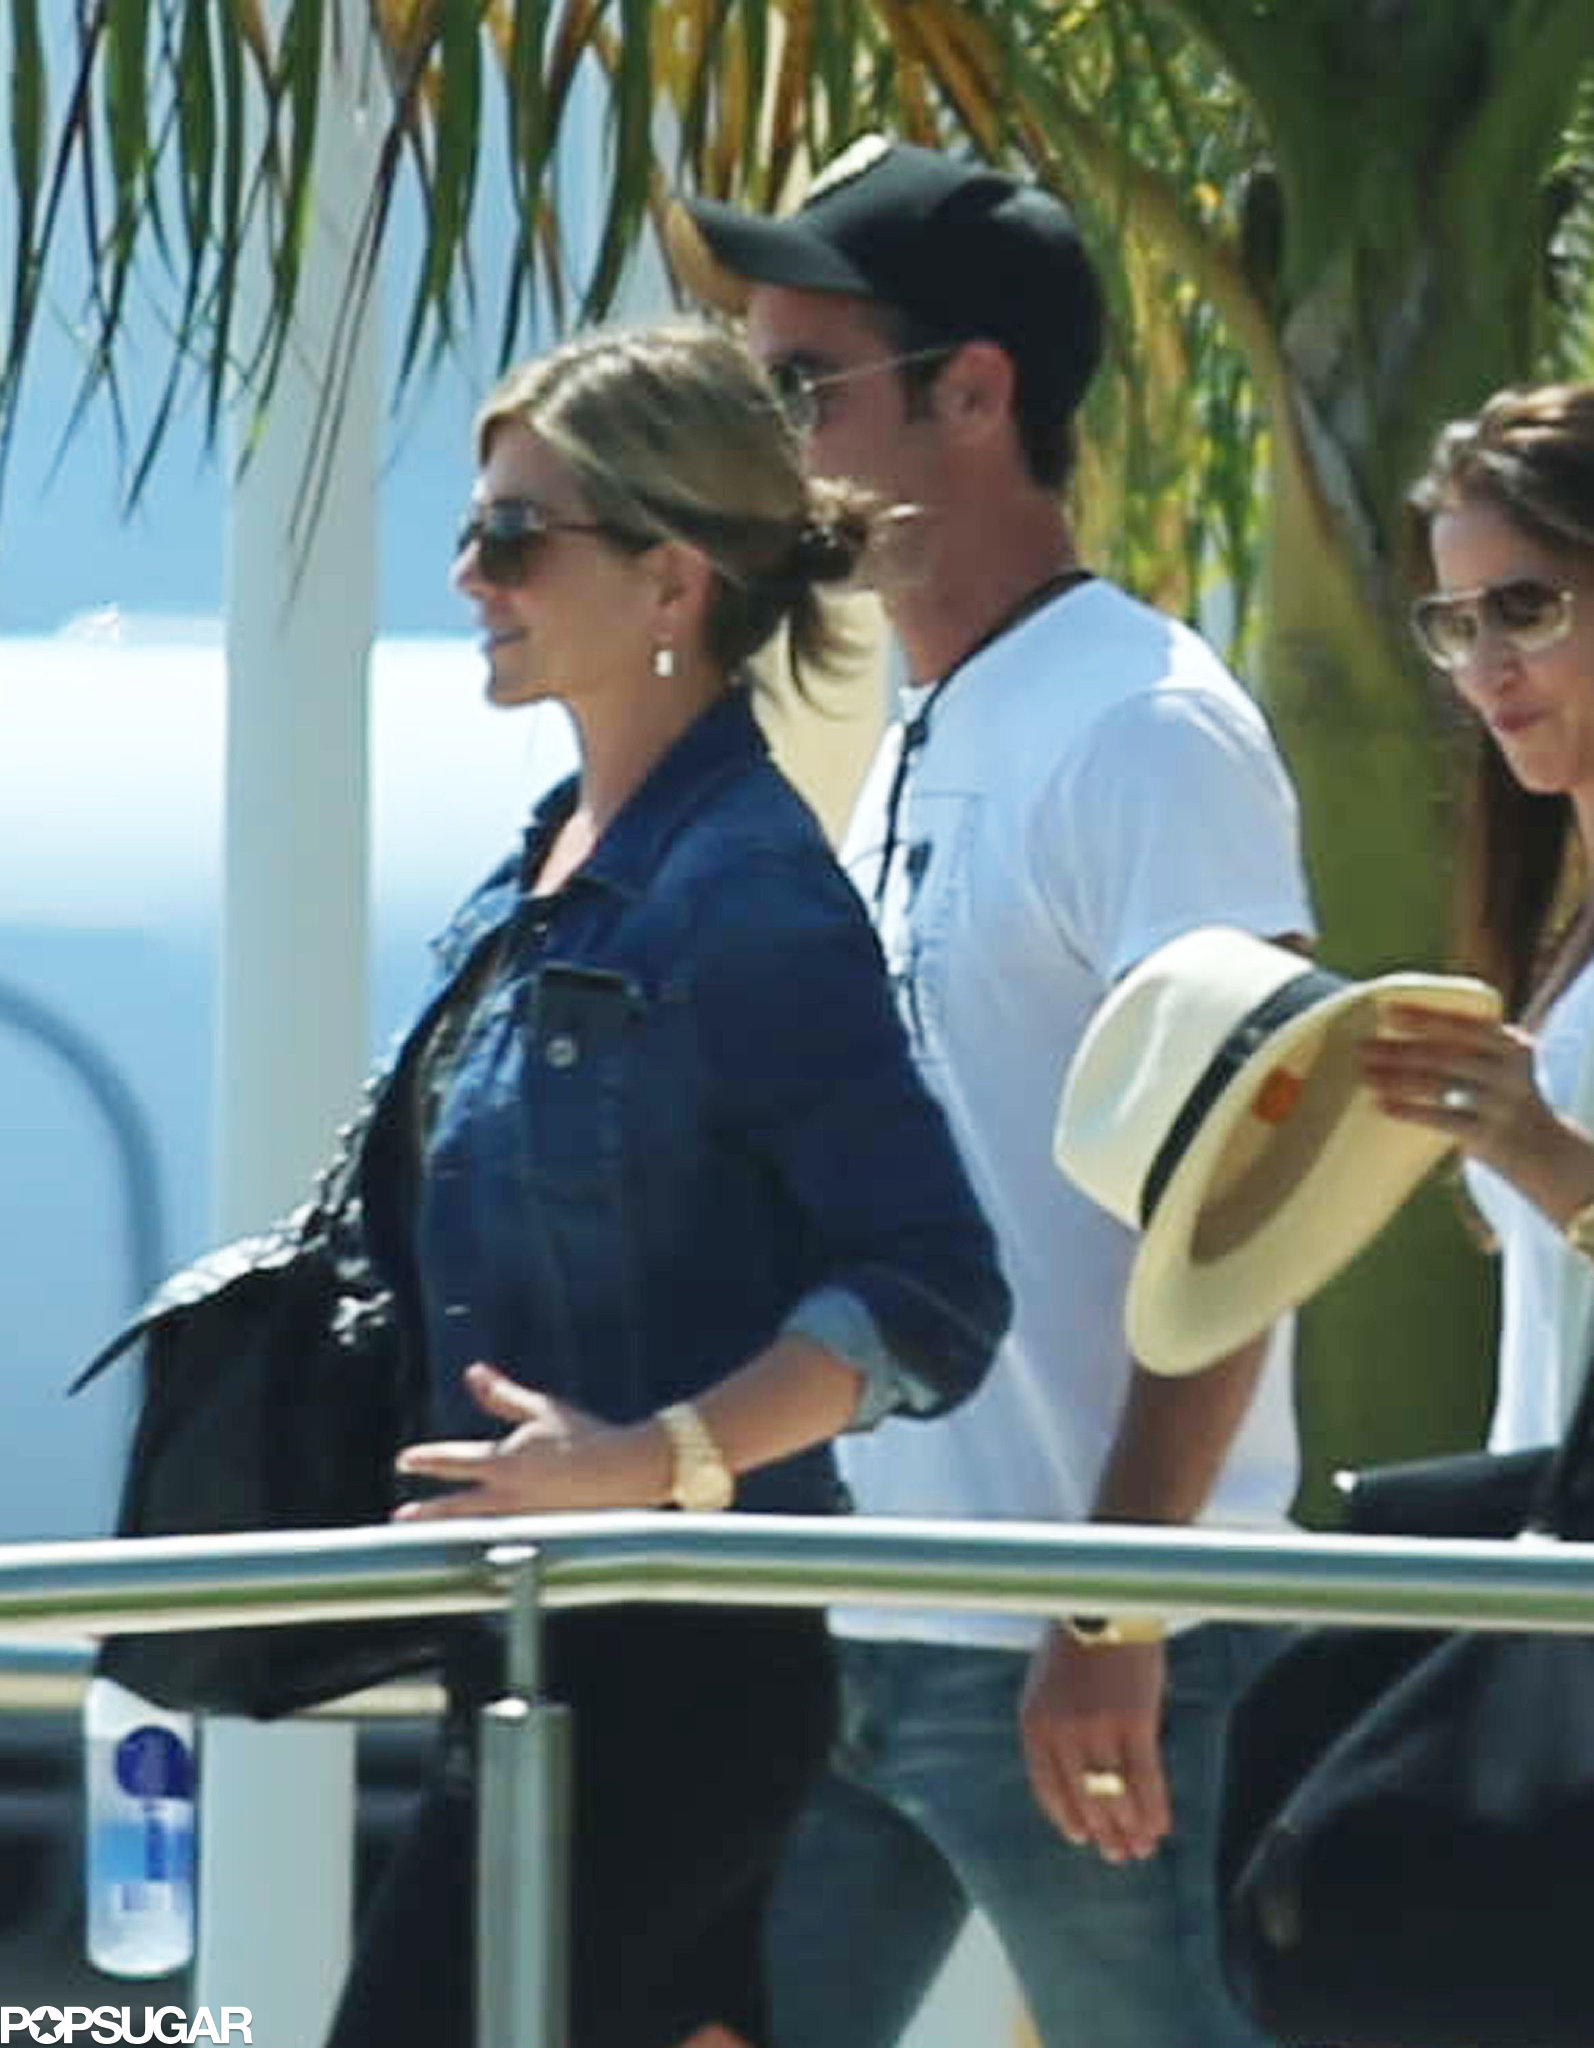 jennifer aniston and her fiance justin theroux arrived in mexico